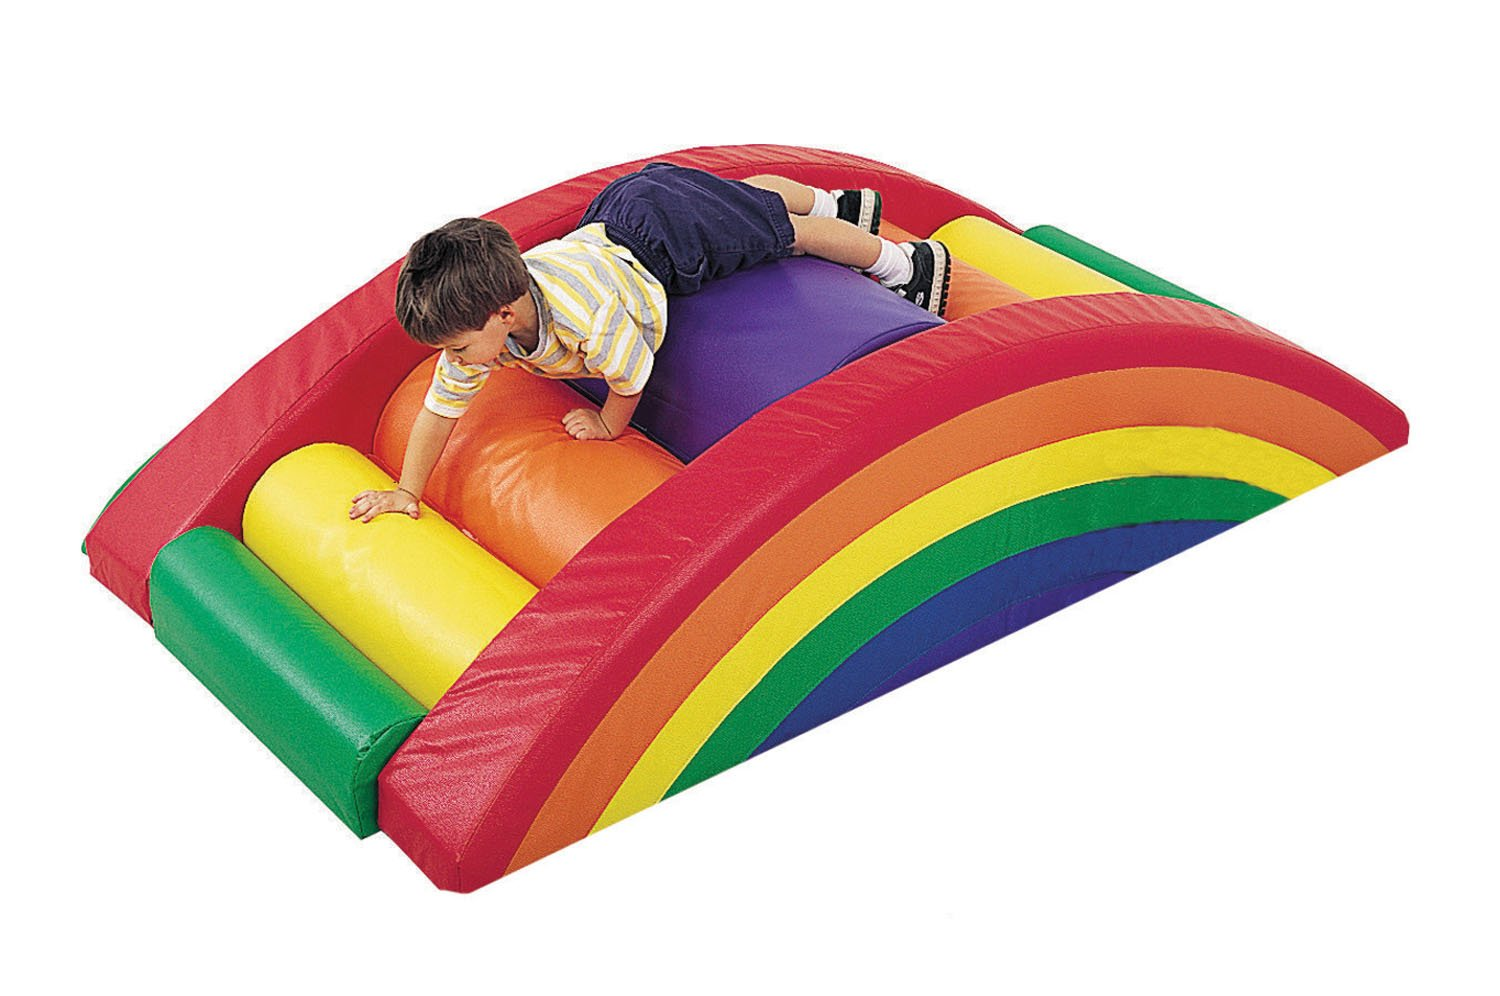 Childrens Factory CF321-207 Rainbow Arch Climber